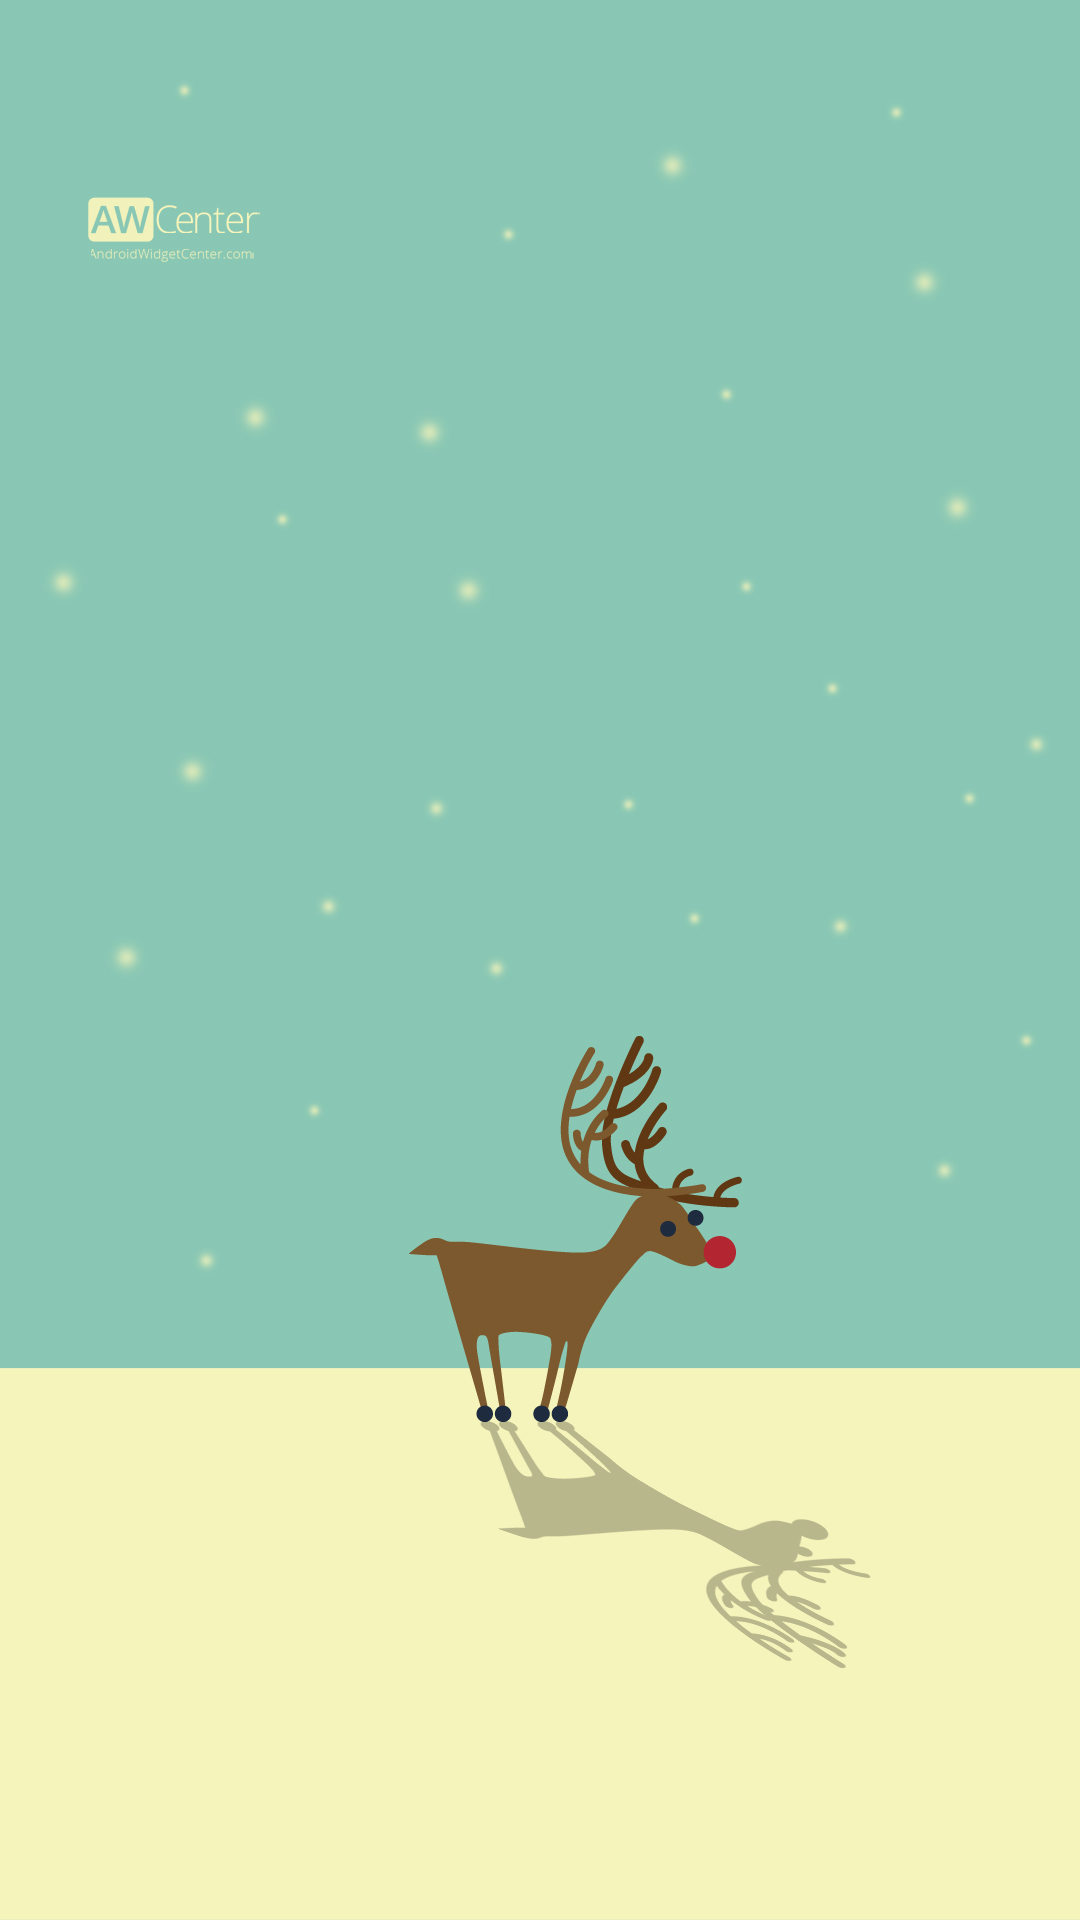 Cute Santa Phone Wallpaper Android Wallpapers Pack 03 It S Christmas Time Aw Center